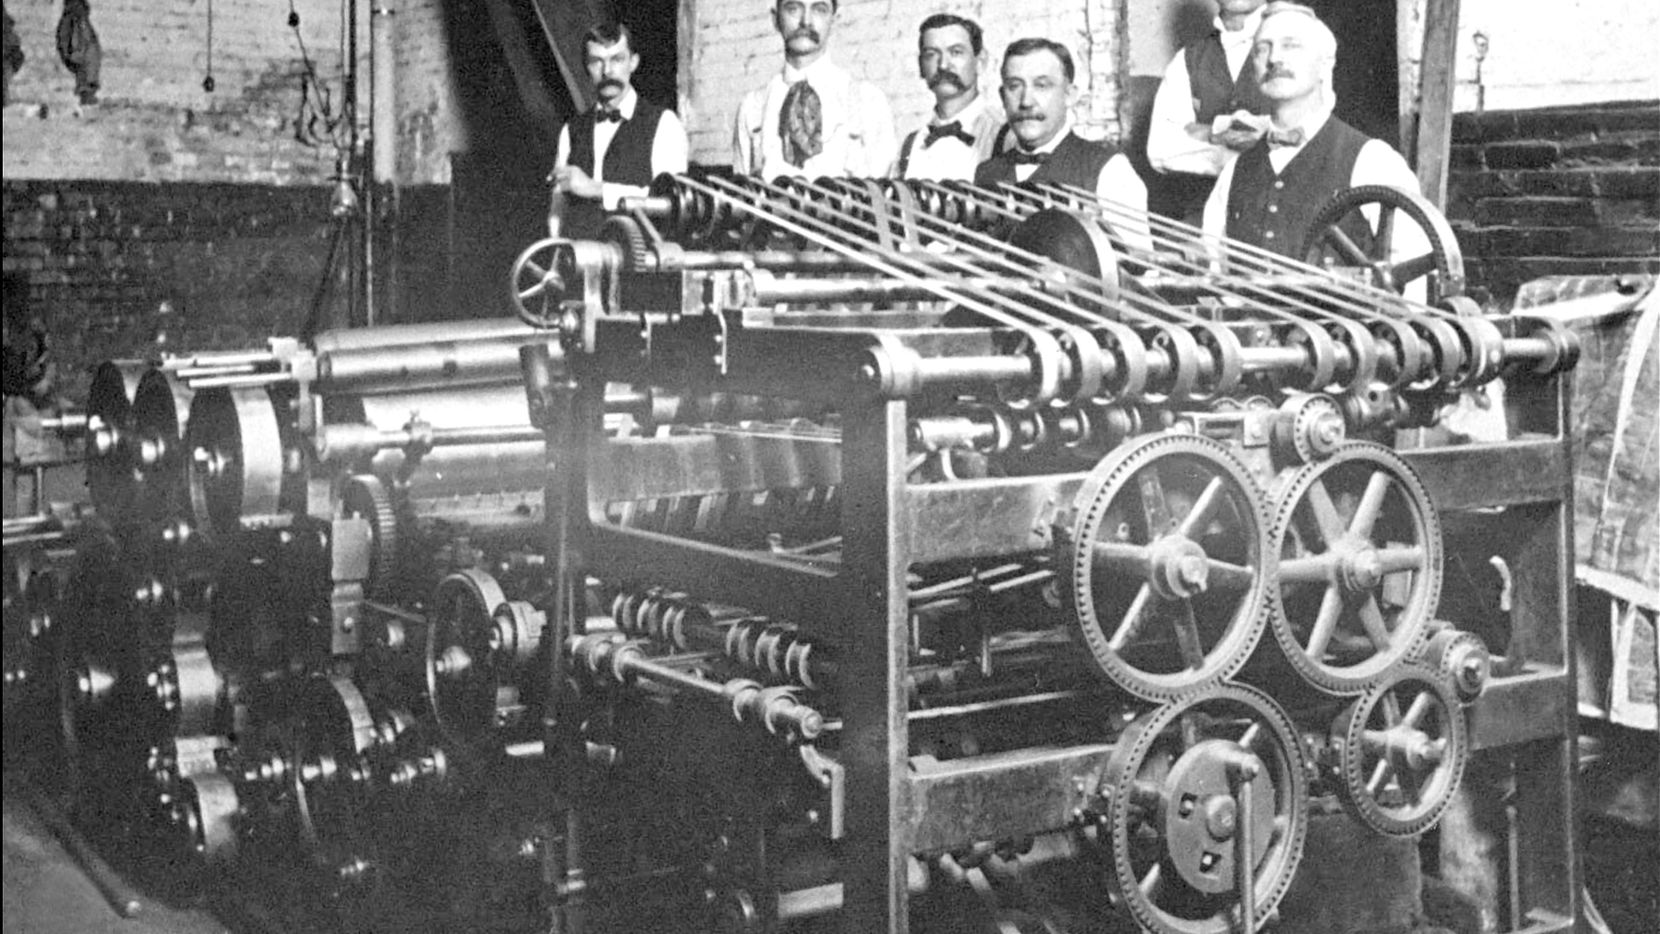 This Bullock press put out the first issue of The News in 1885.  G.B. Dealey is at the far right.